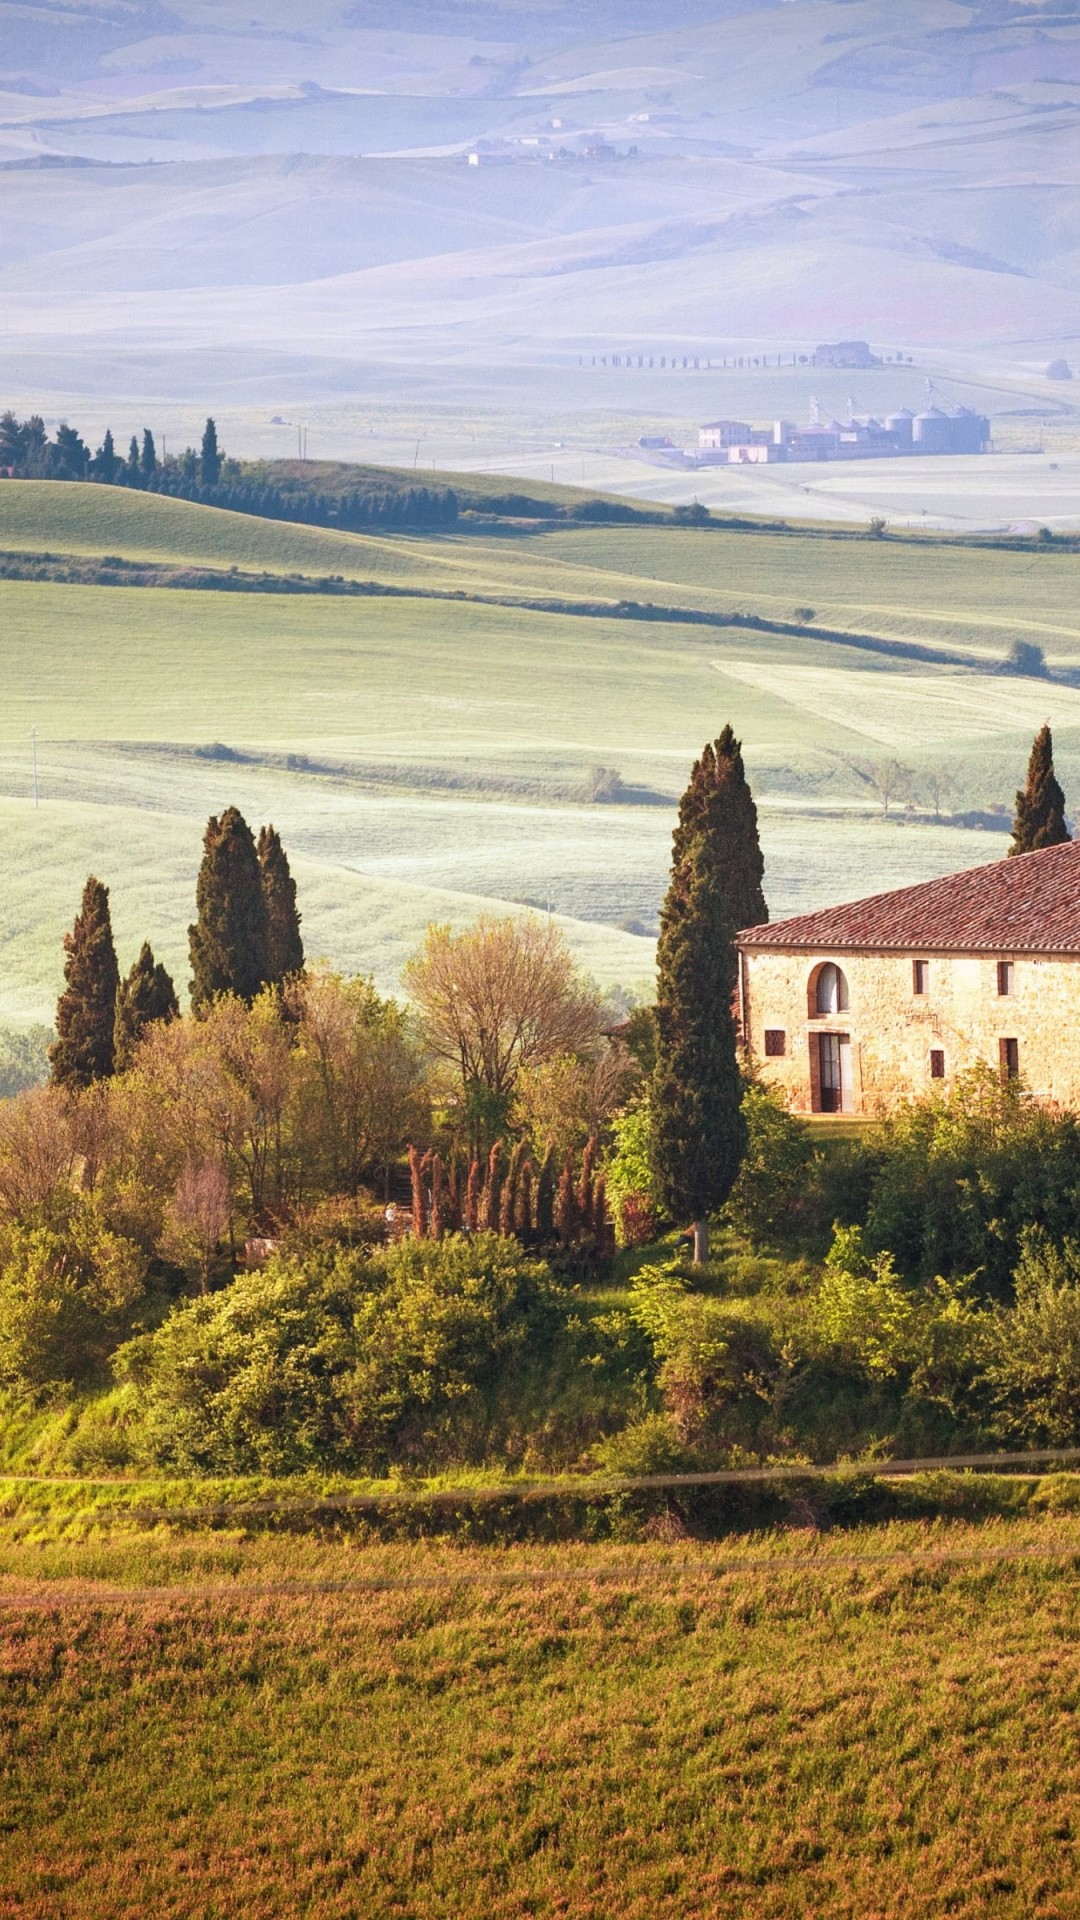 Summer in Tuscany, Italy Wallpaper for Google Nexus 5